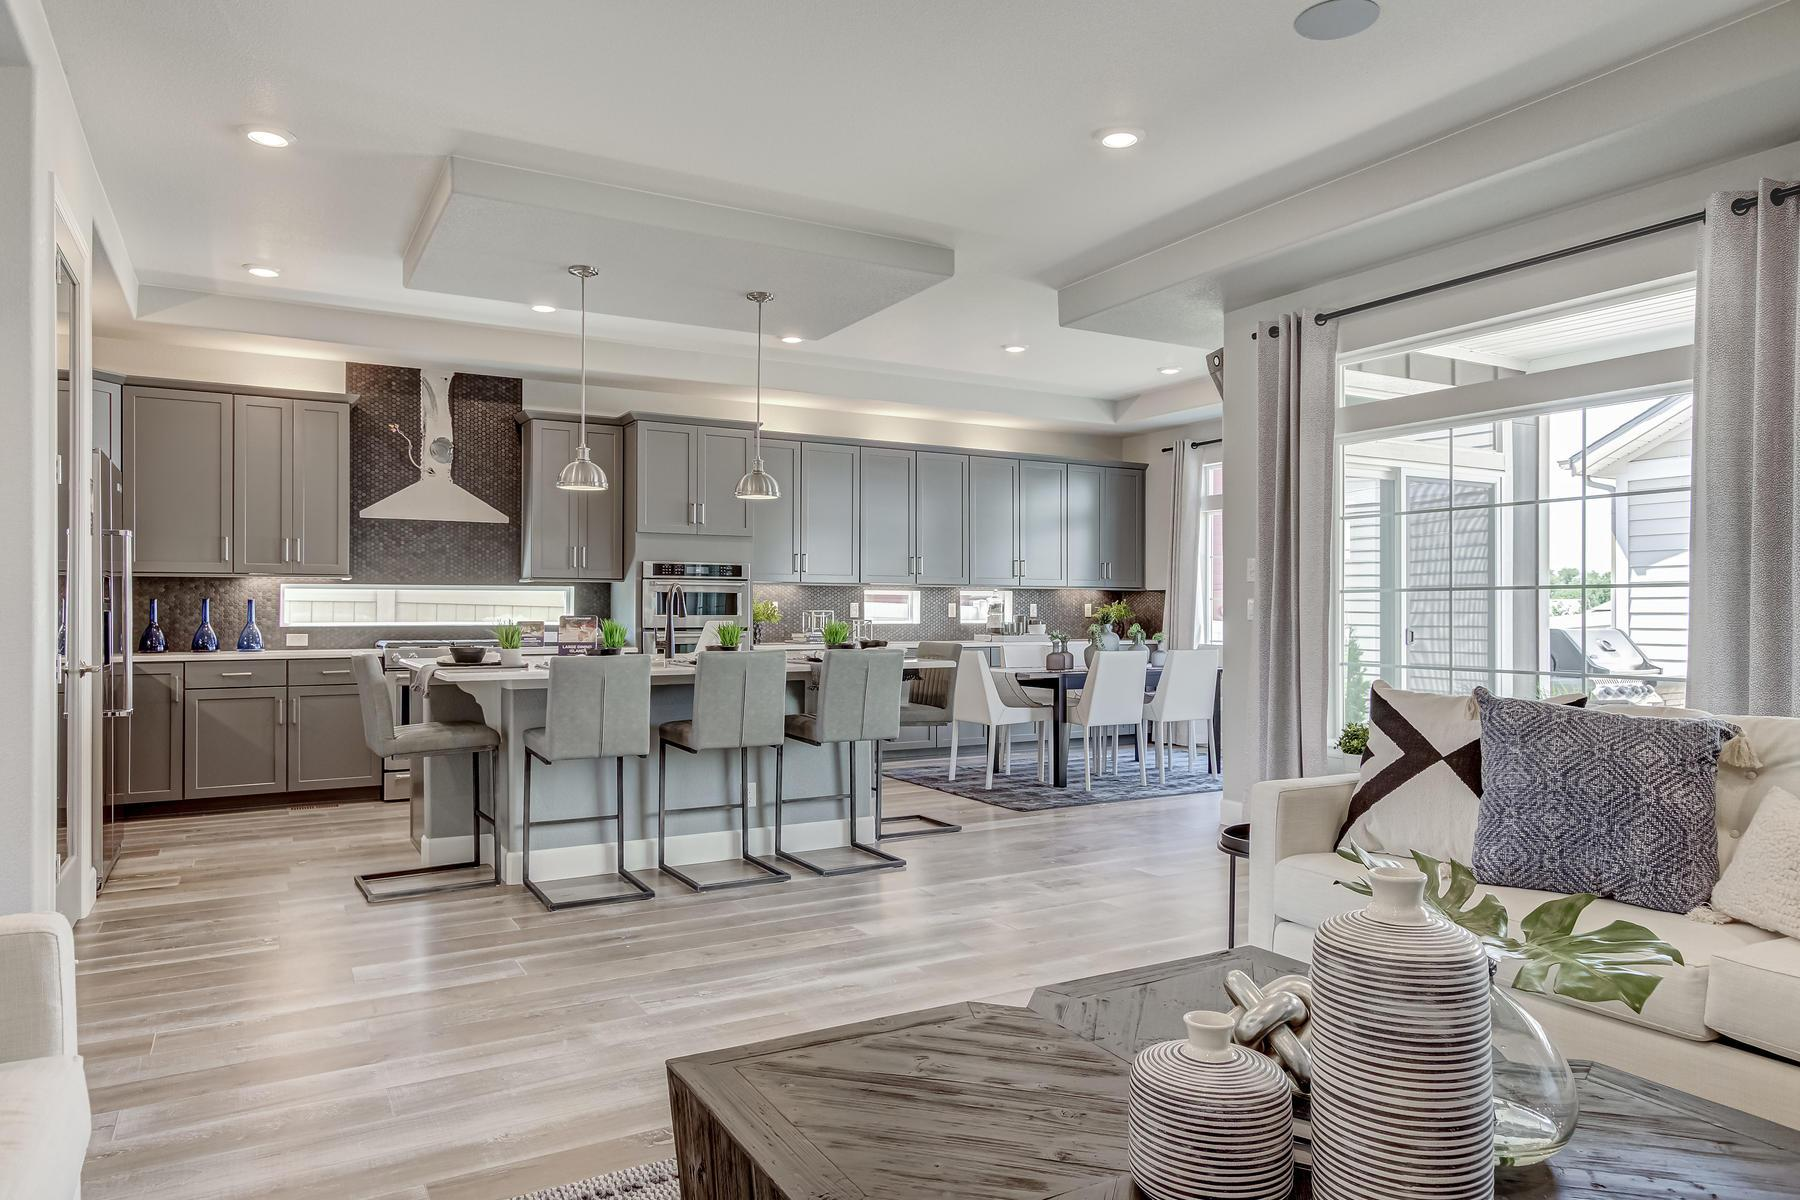 Living Area featured in the Ponderosa By OakwoodLife in Denver, CO